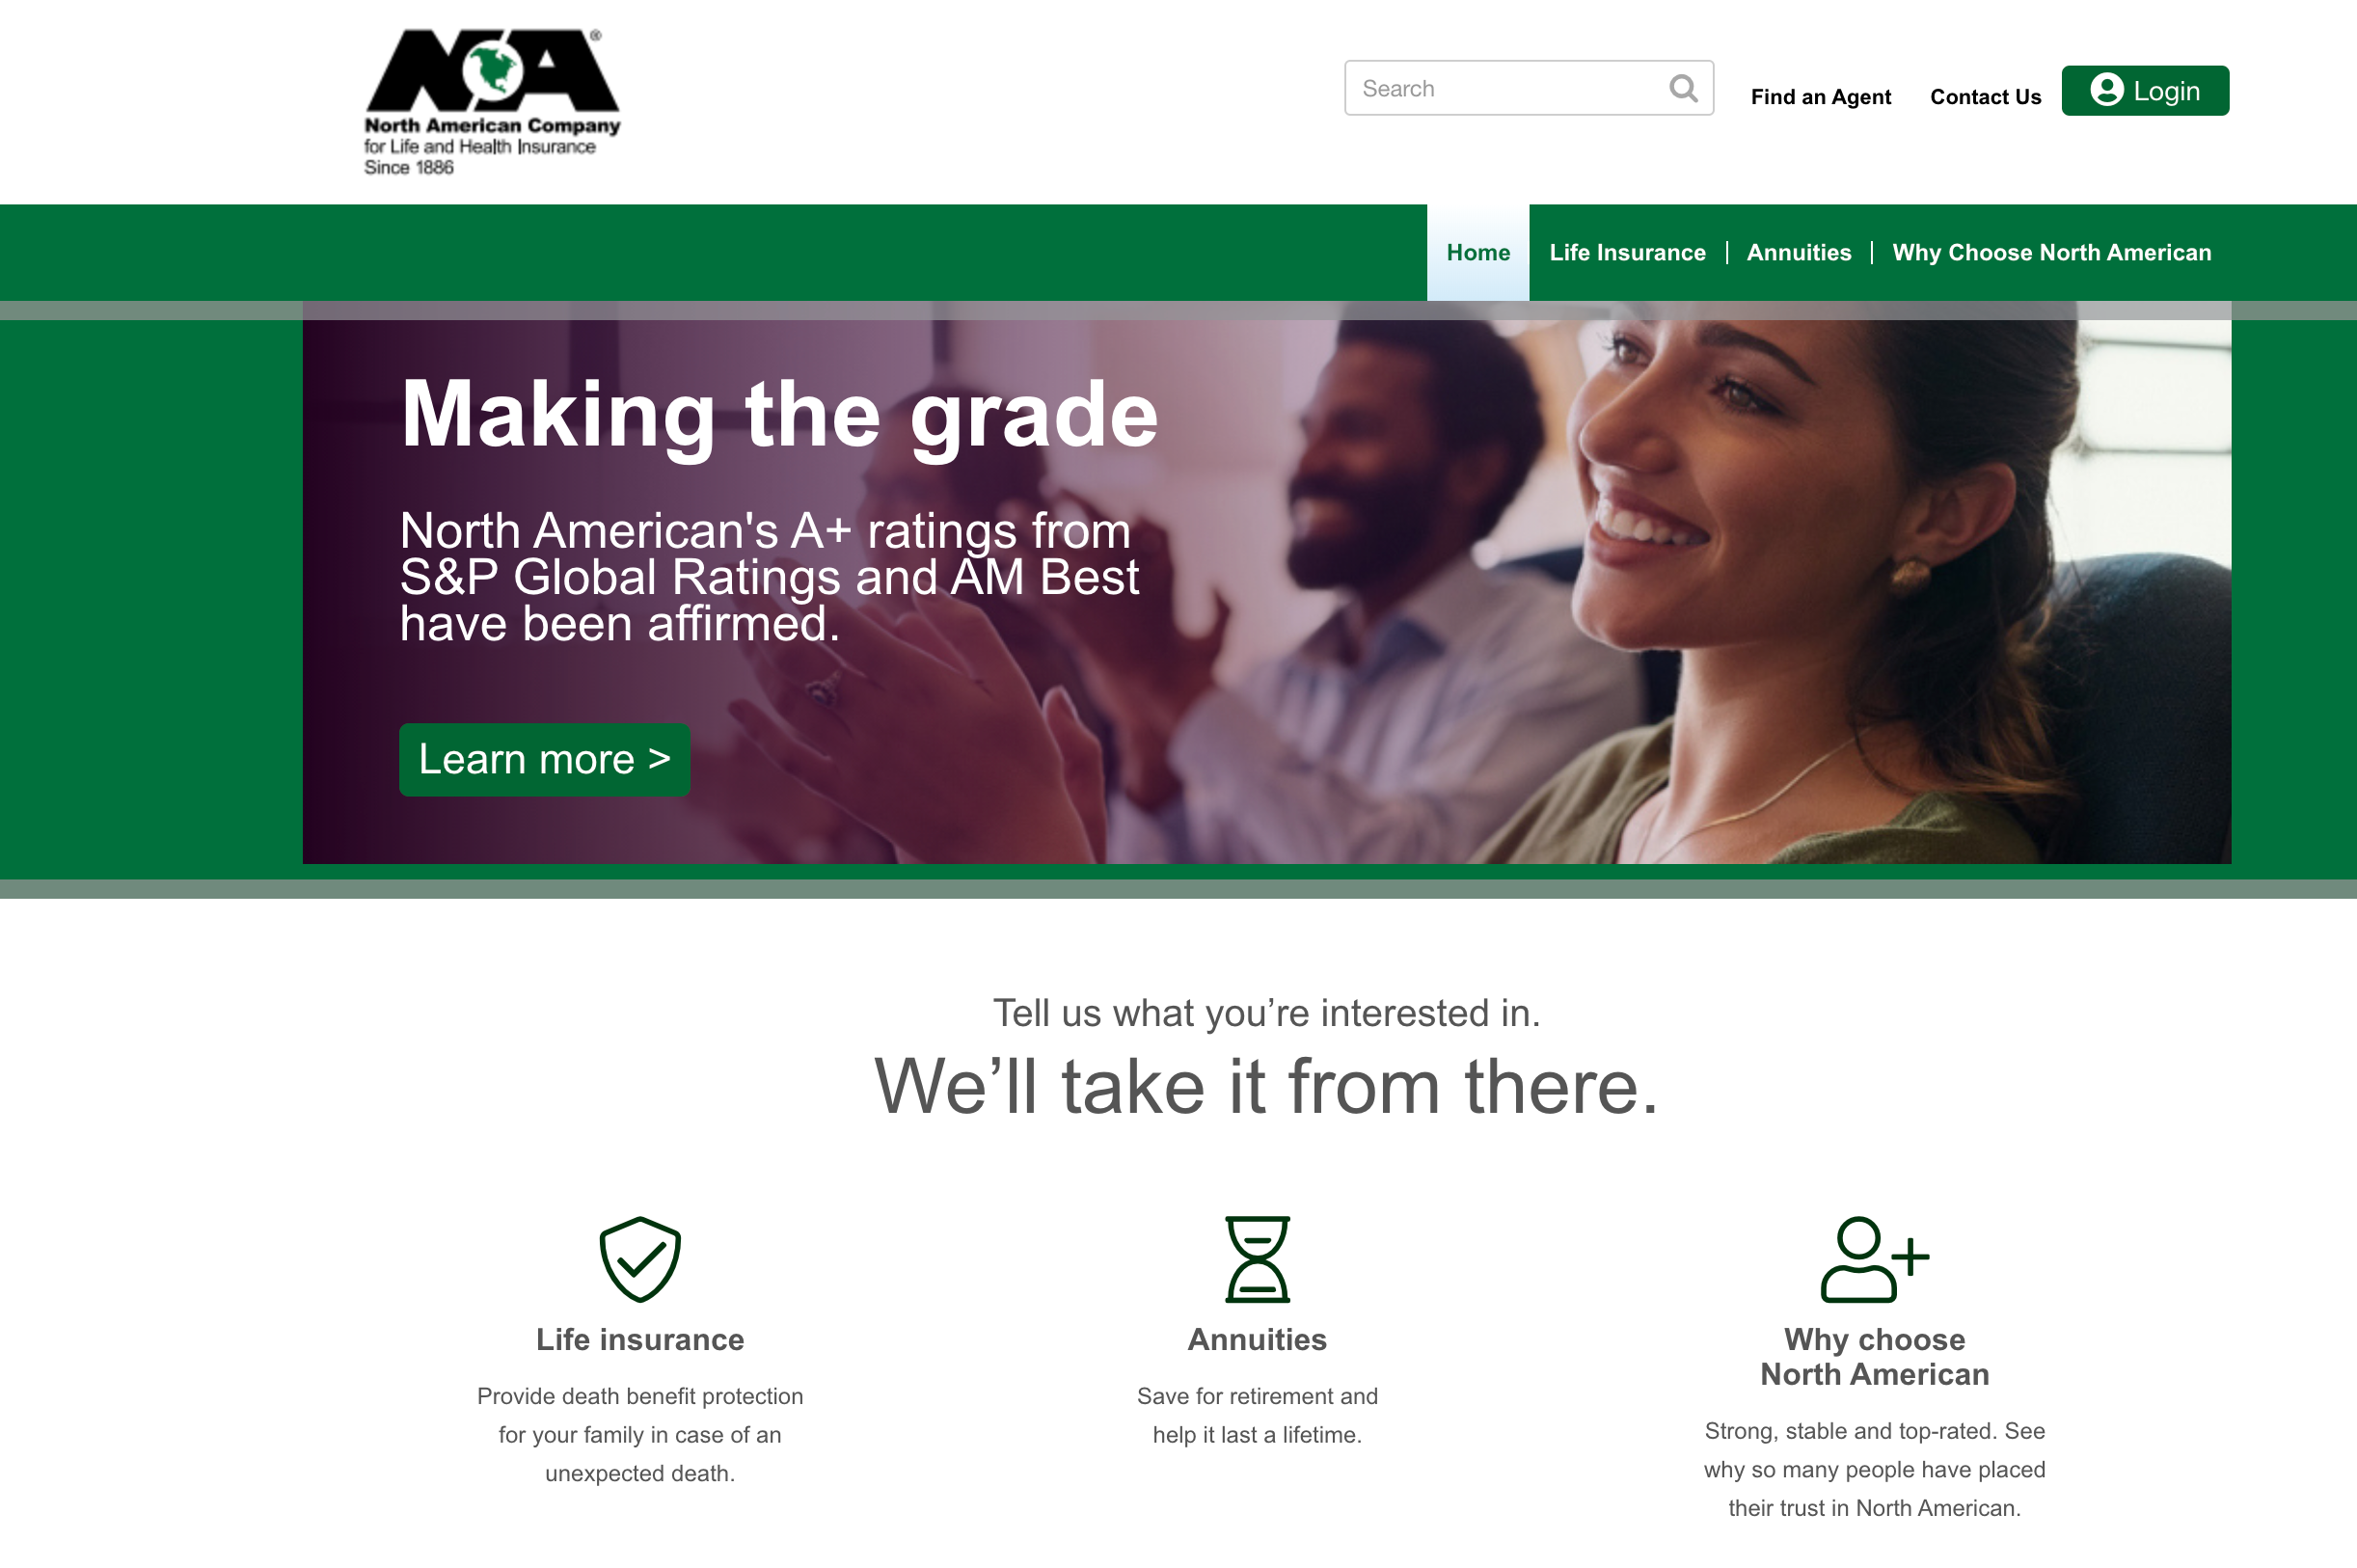 North American Company Home Page